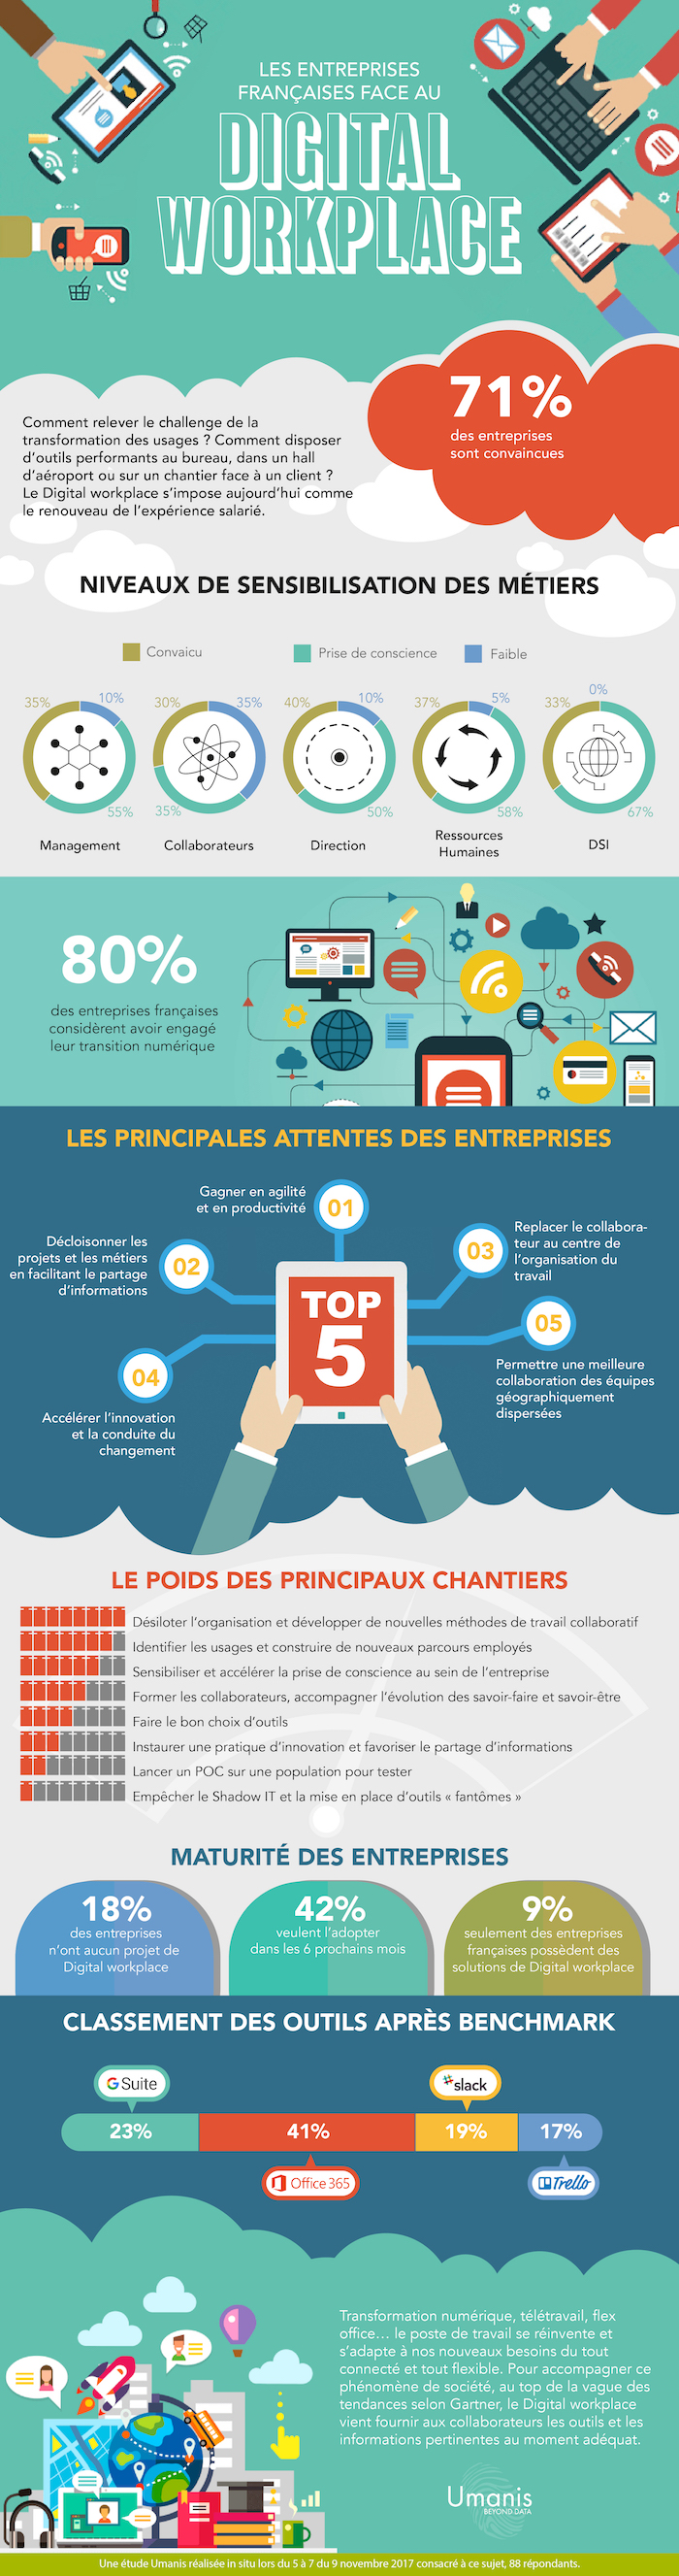 infographie digital workplace